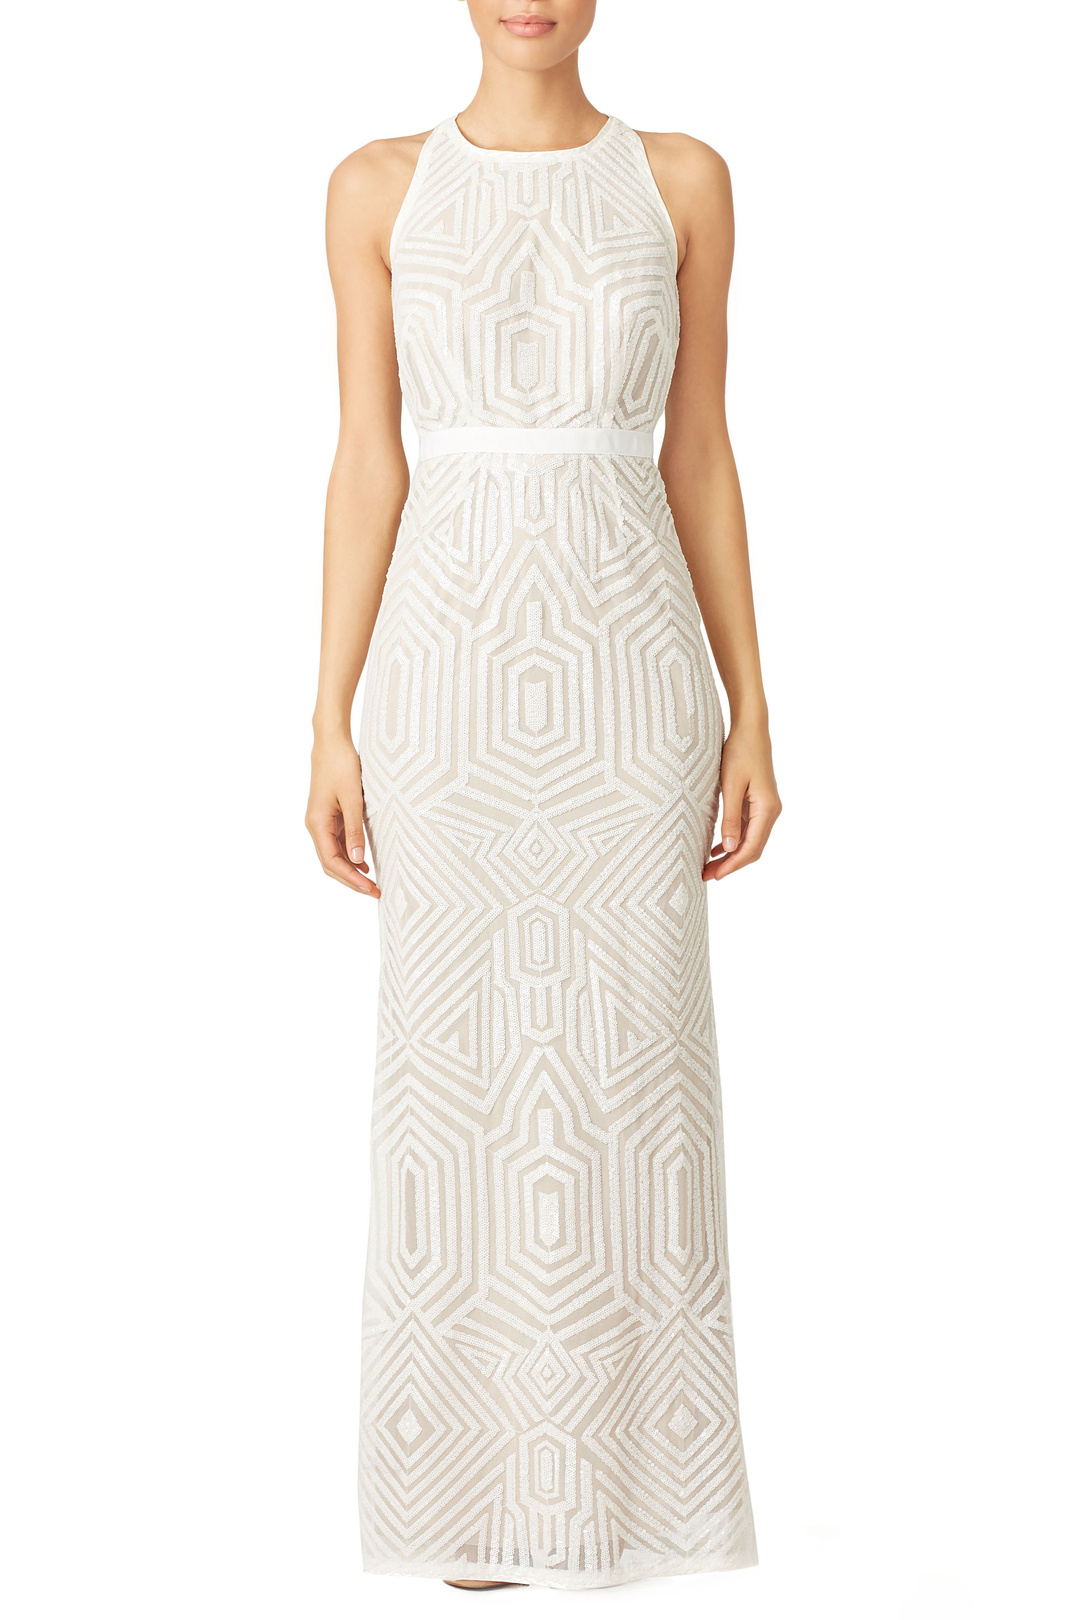 Laundry by Shelli Segal Carraway Gown